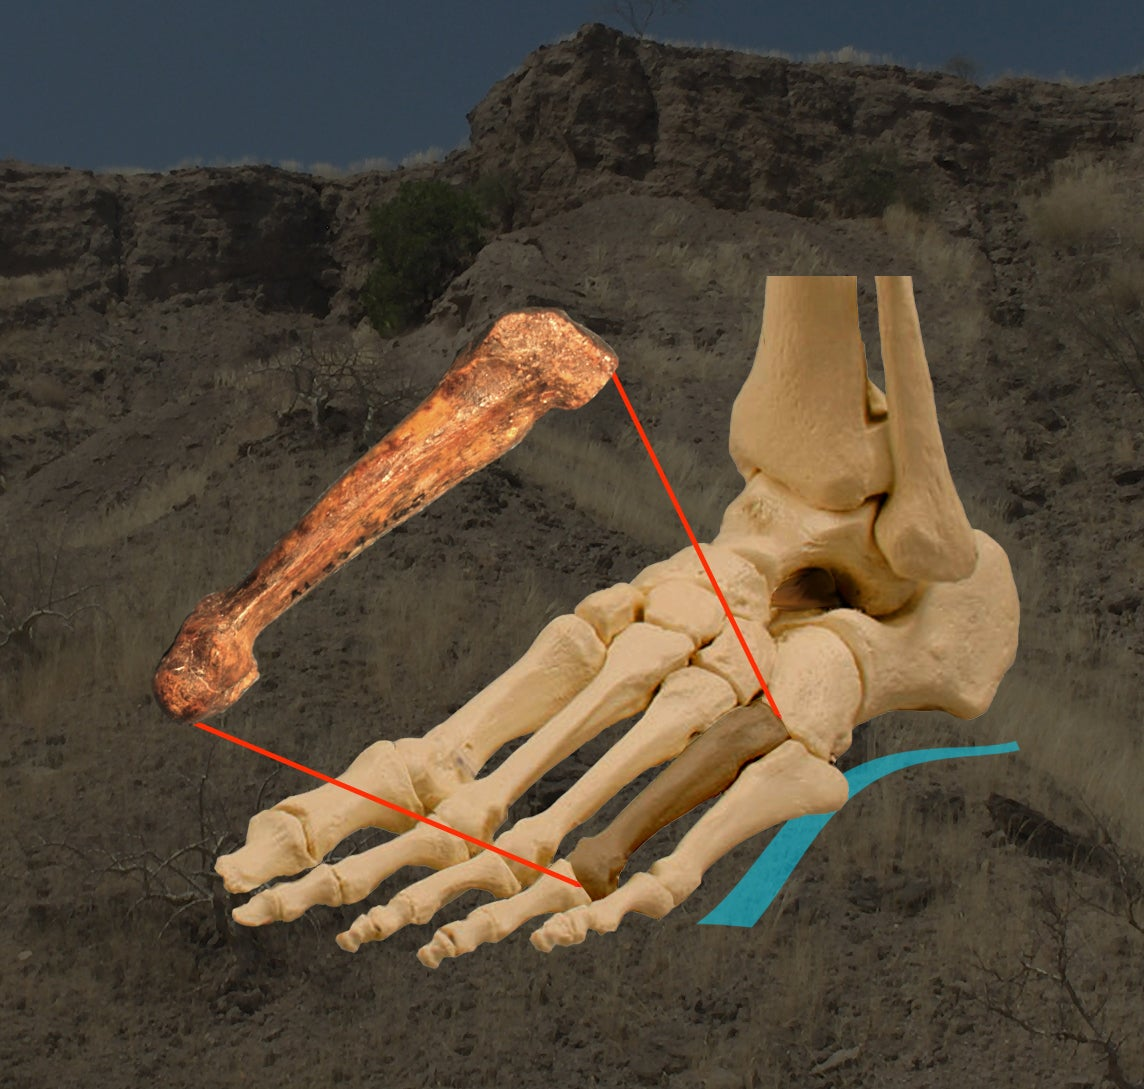 foot image with bone